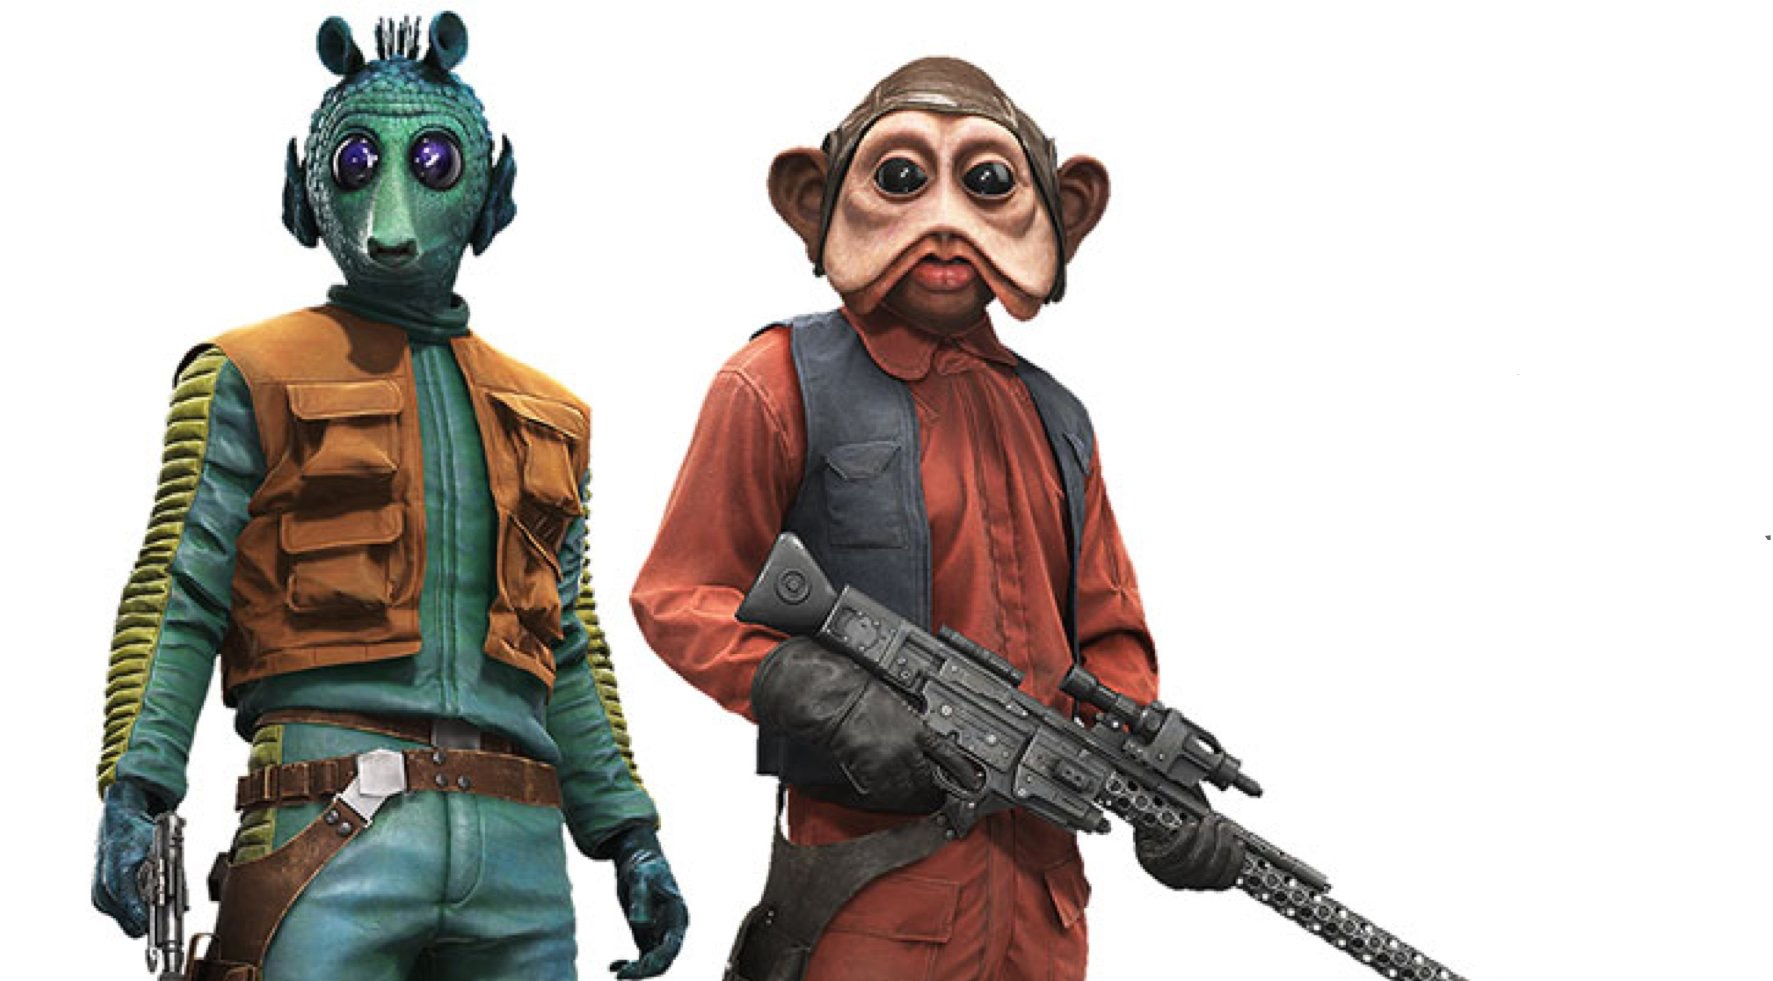 Greedo and Nien Nunb Confimed